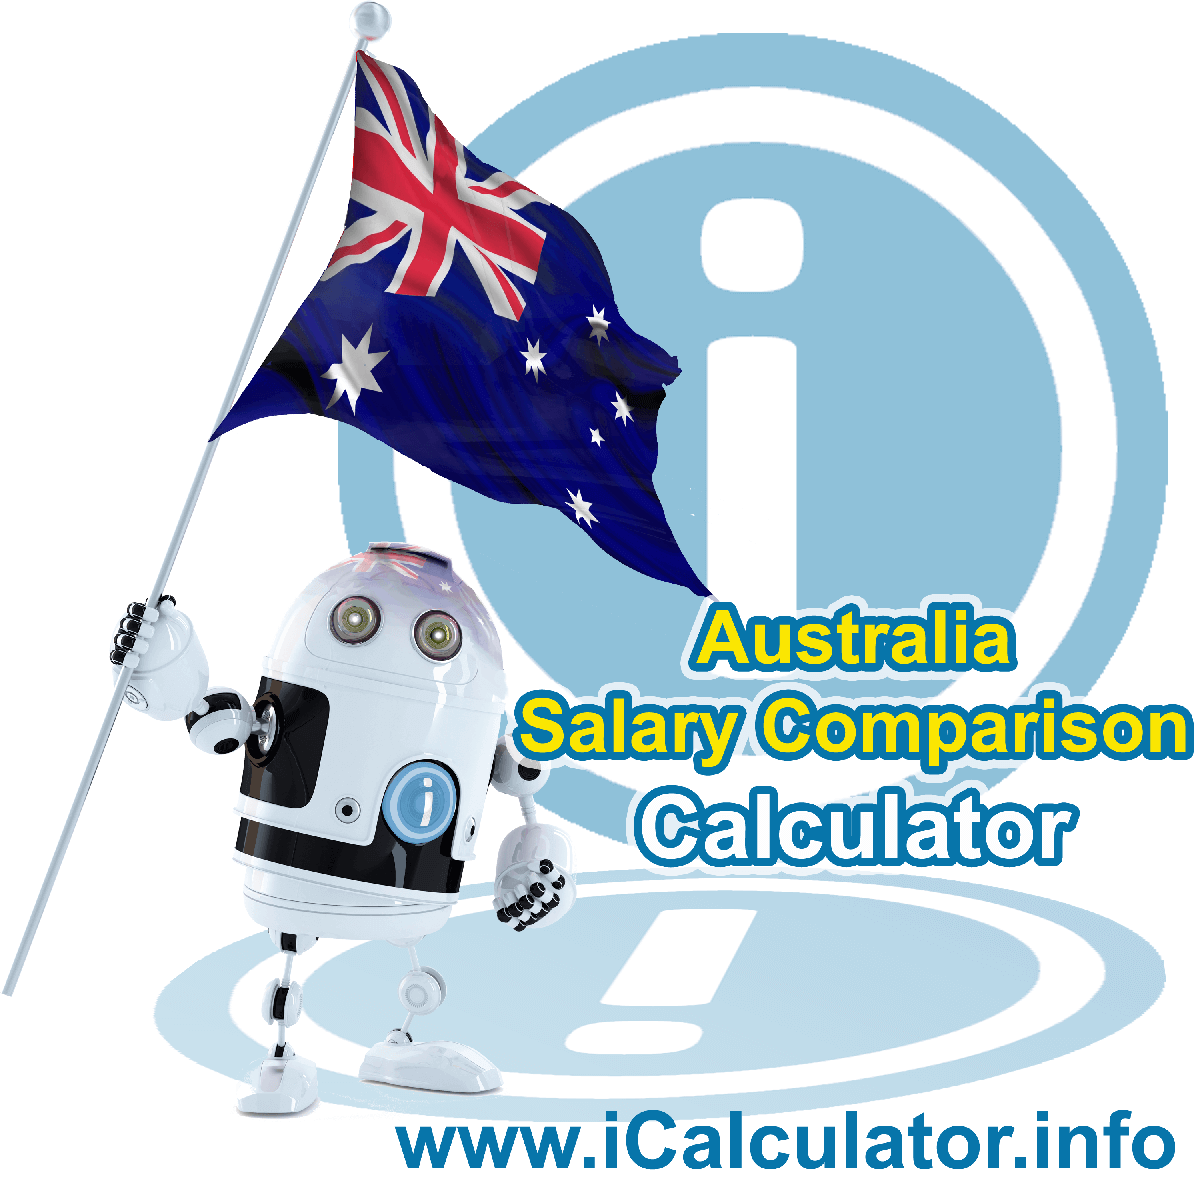 Australia Four Weekly Salary Comparison Calculator. This image shows the Australia flag and information relating to the income tax formula for the Australia Four Weekly Salary Comparison Calculator